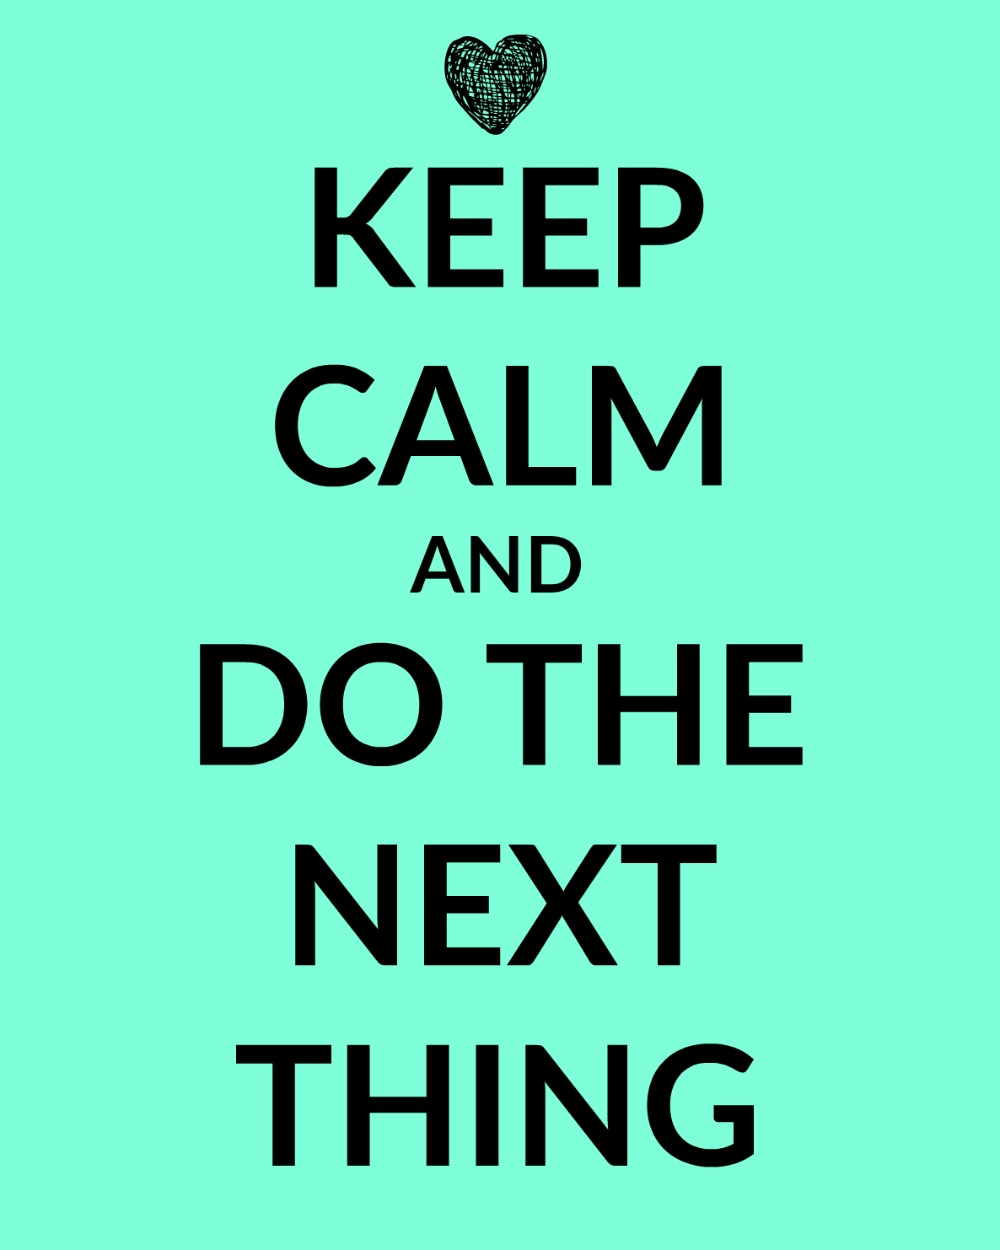 Keep Calm & Do the Next Thing